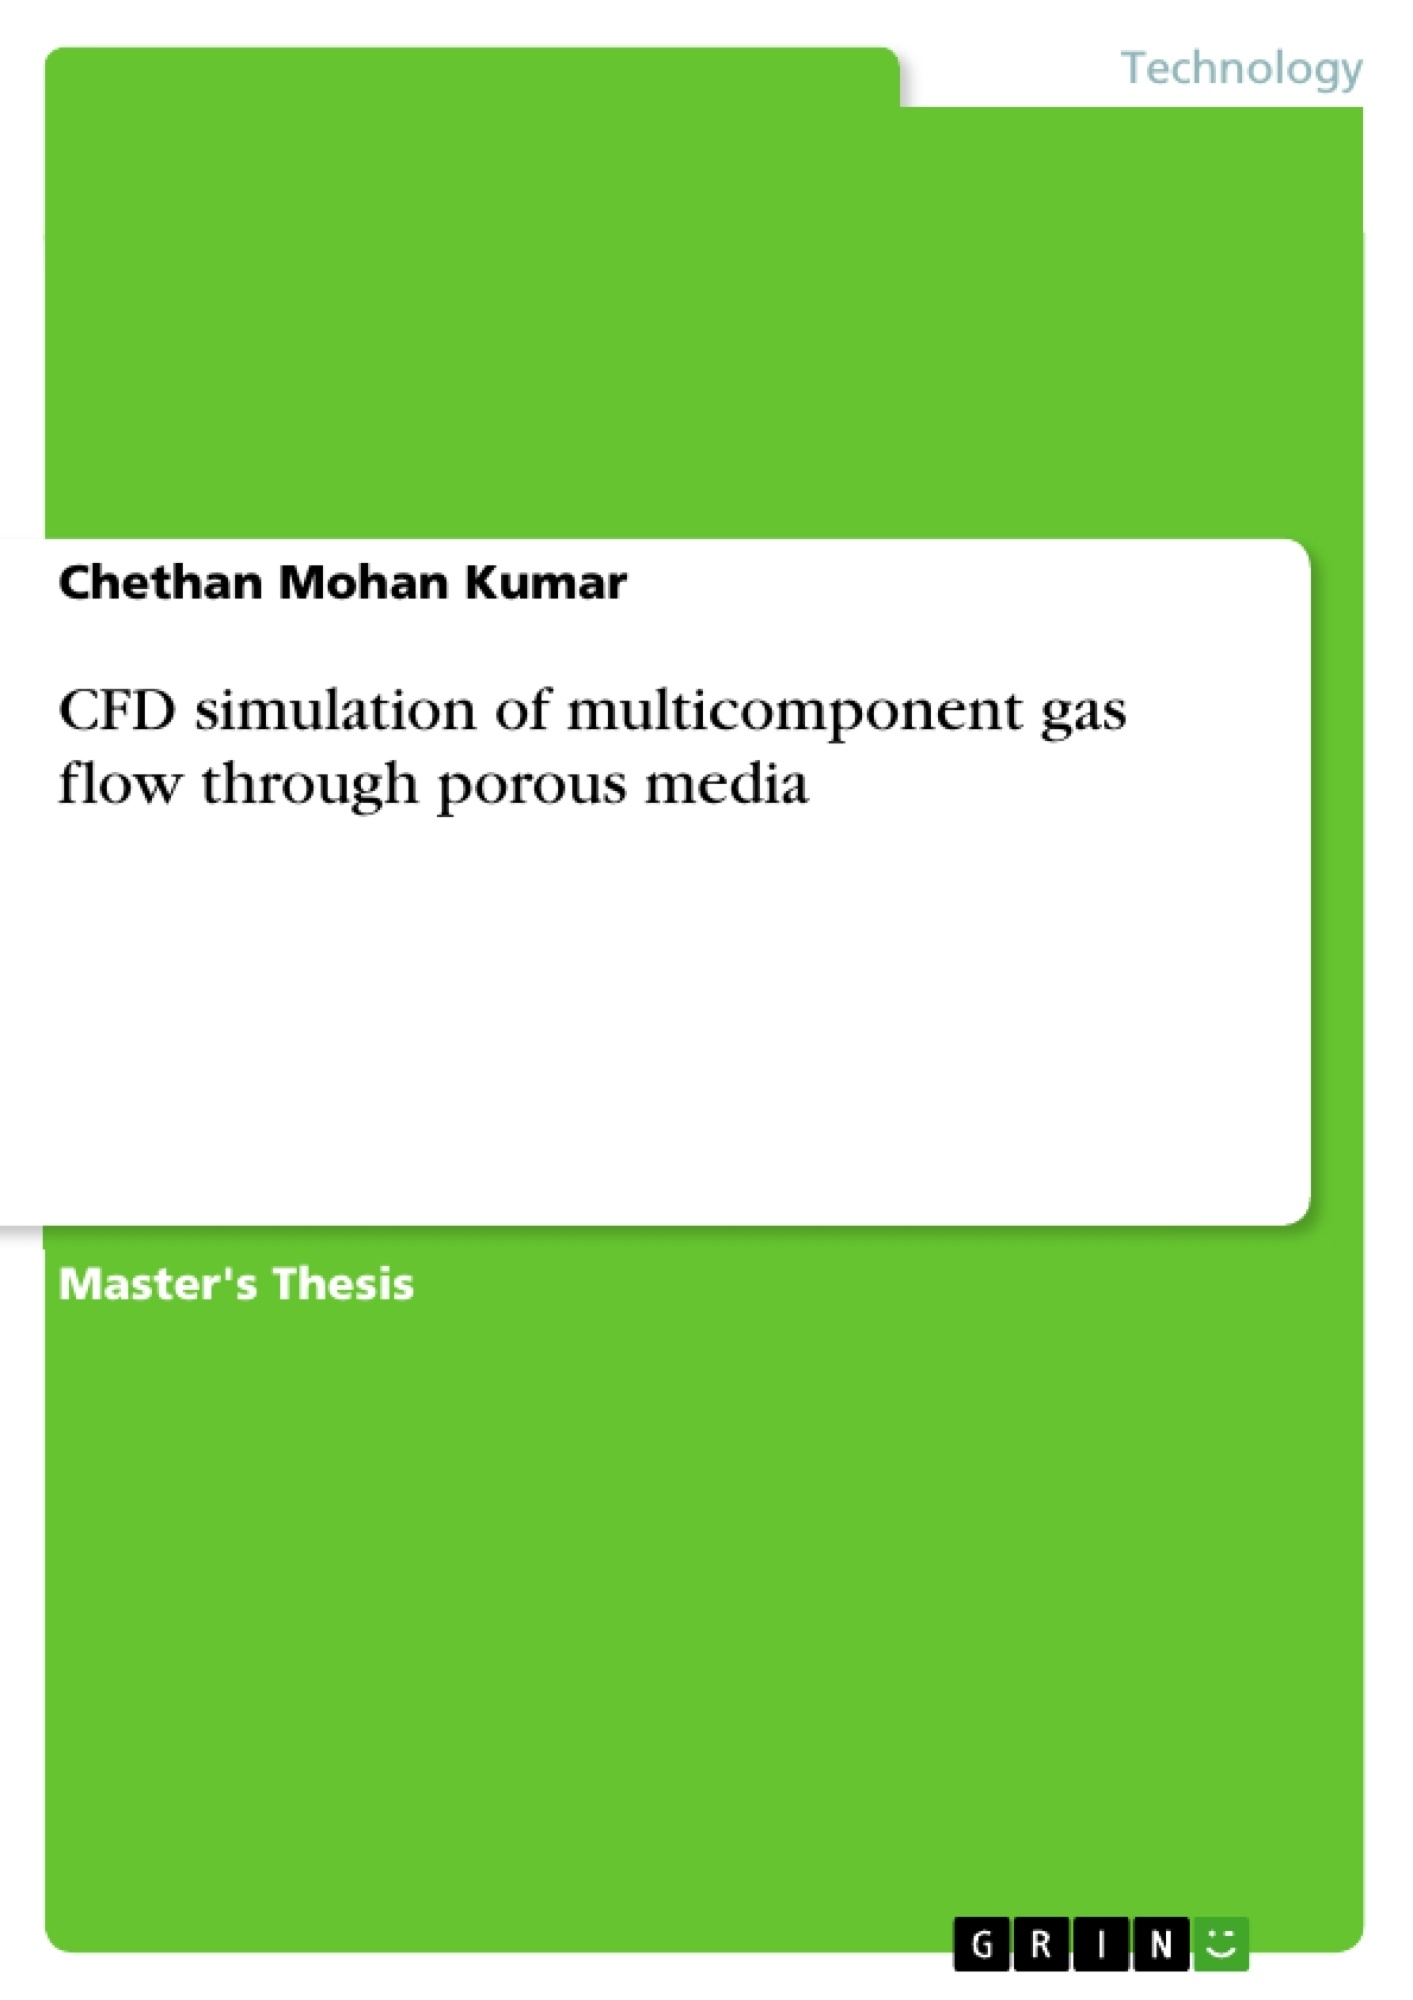 Title: CFD simulation of multicomponent gas flow through porous media